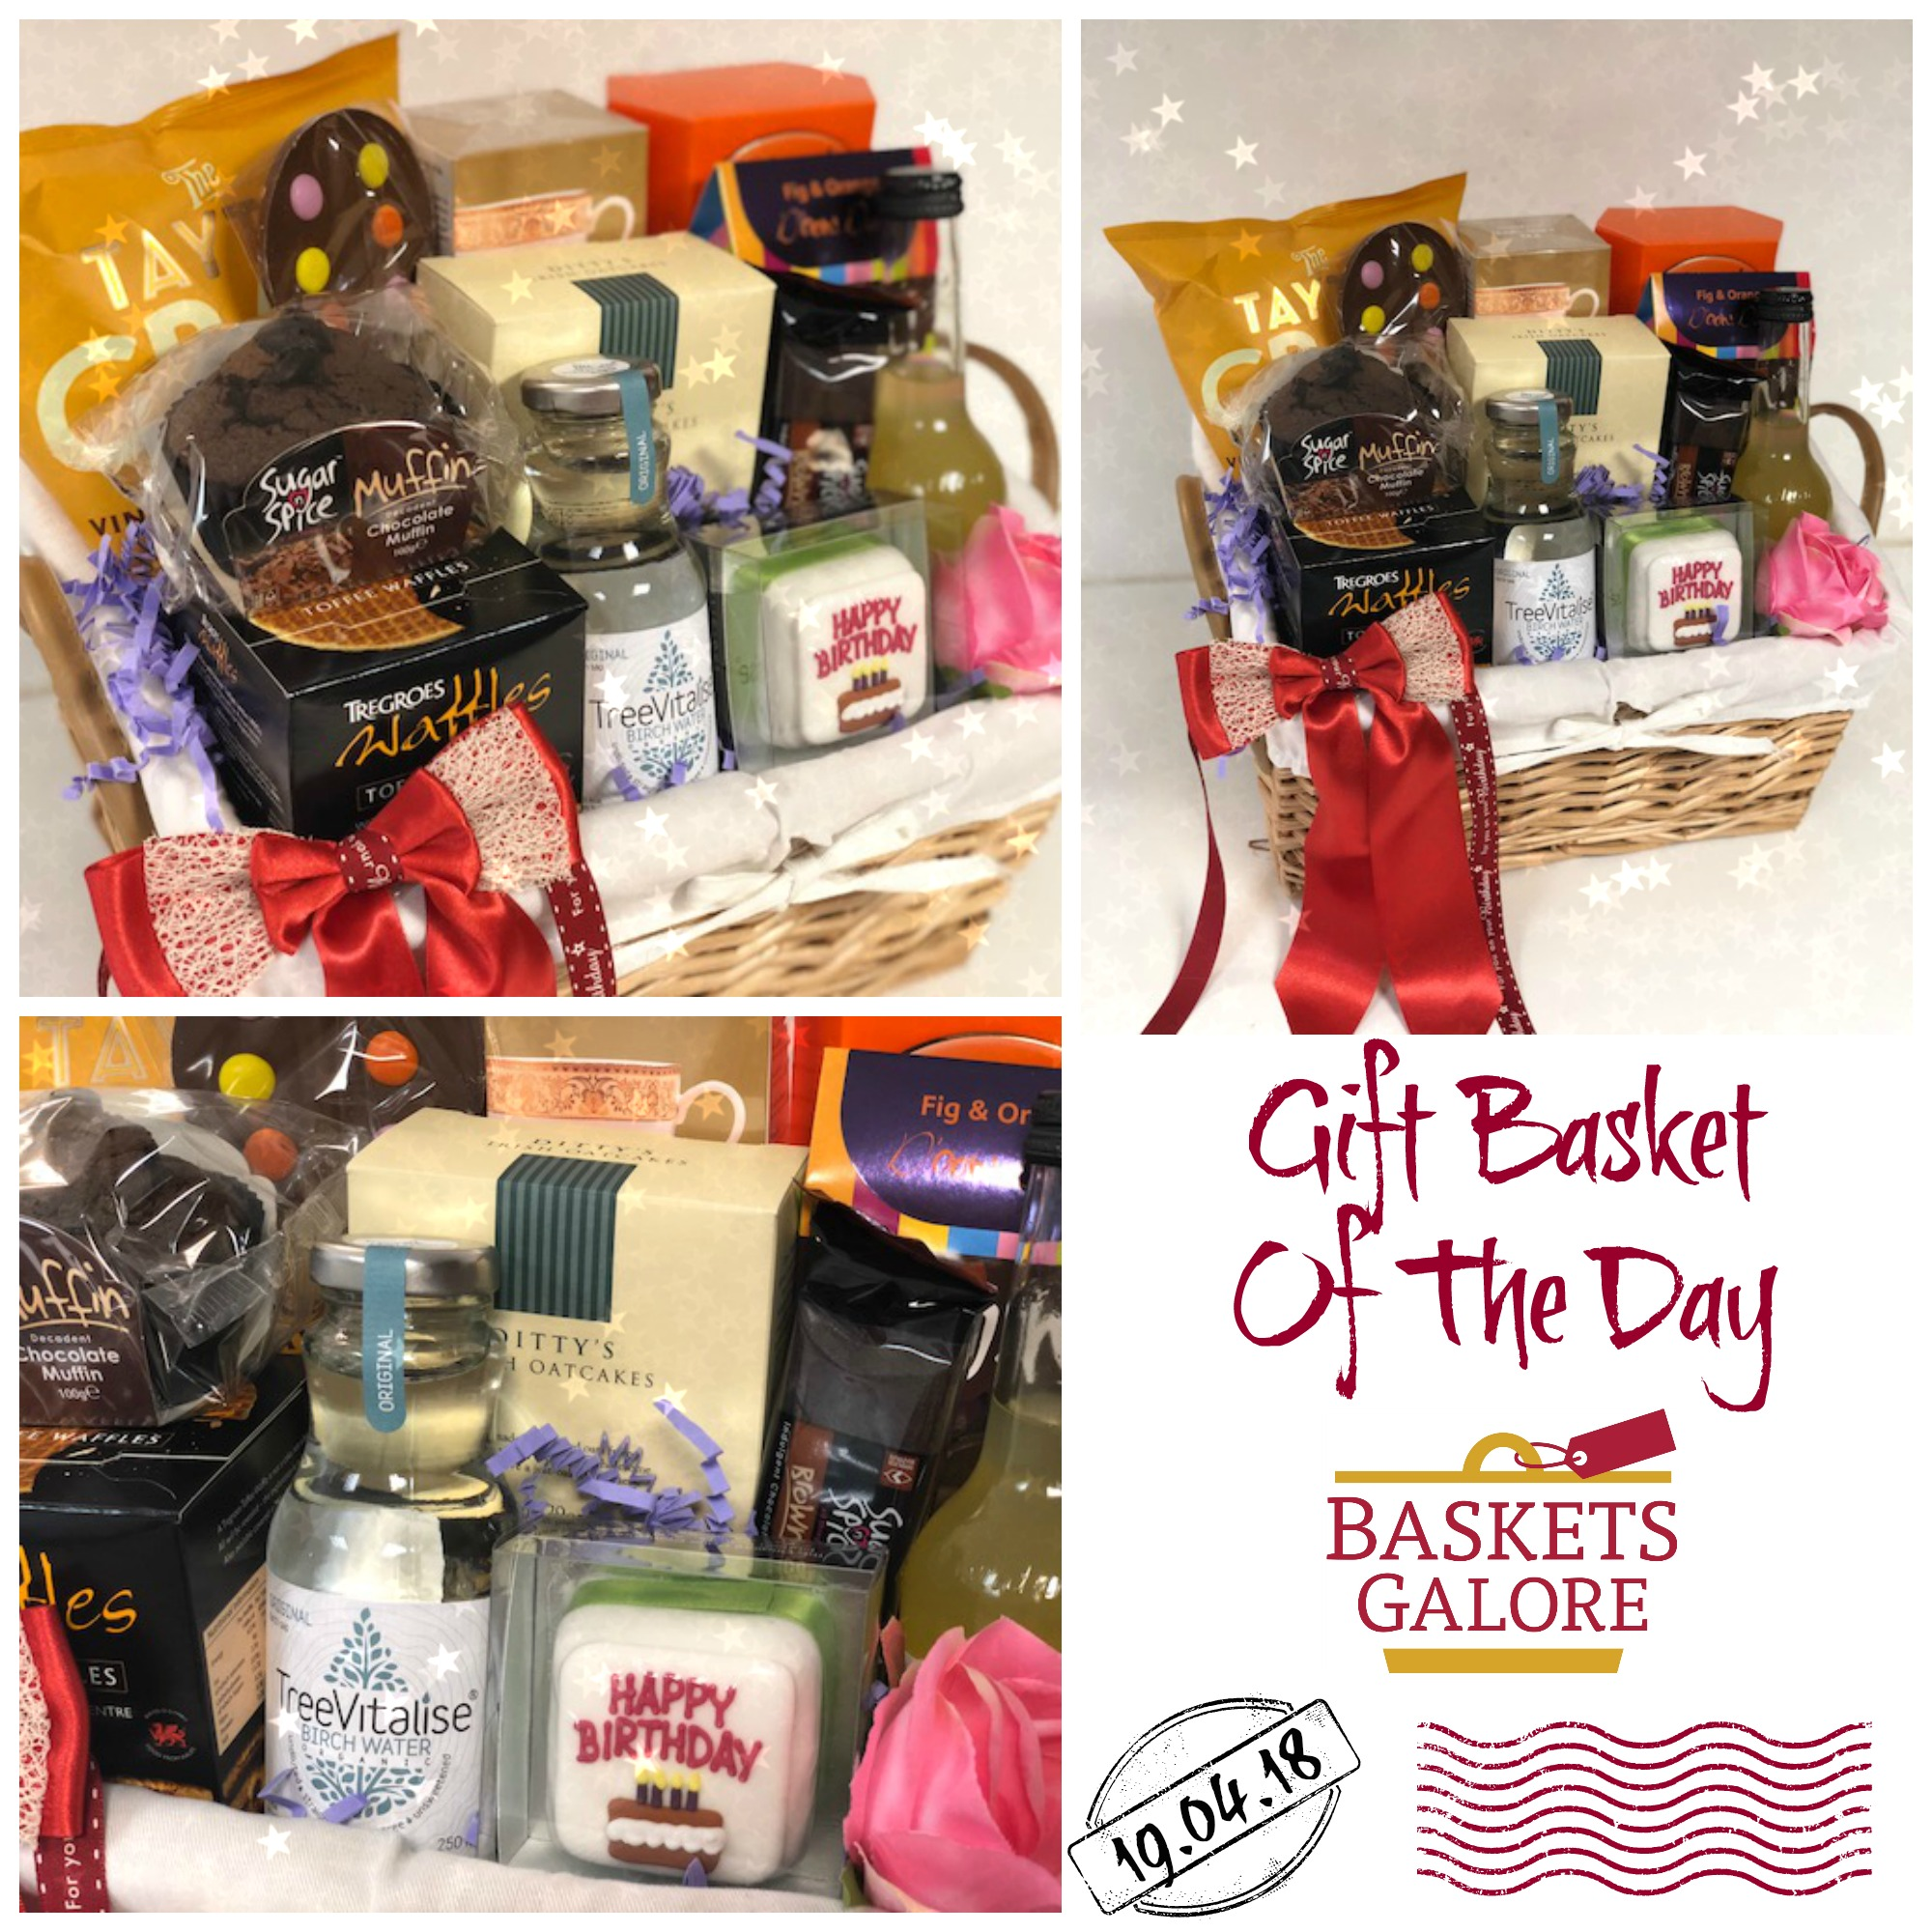 Baskets Galore's Customer Gifts – Gift Basket of the Day 19.04.18